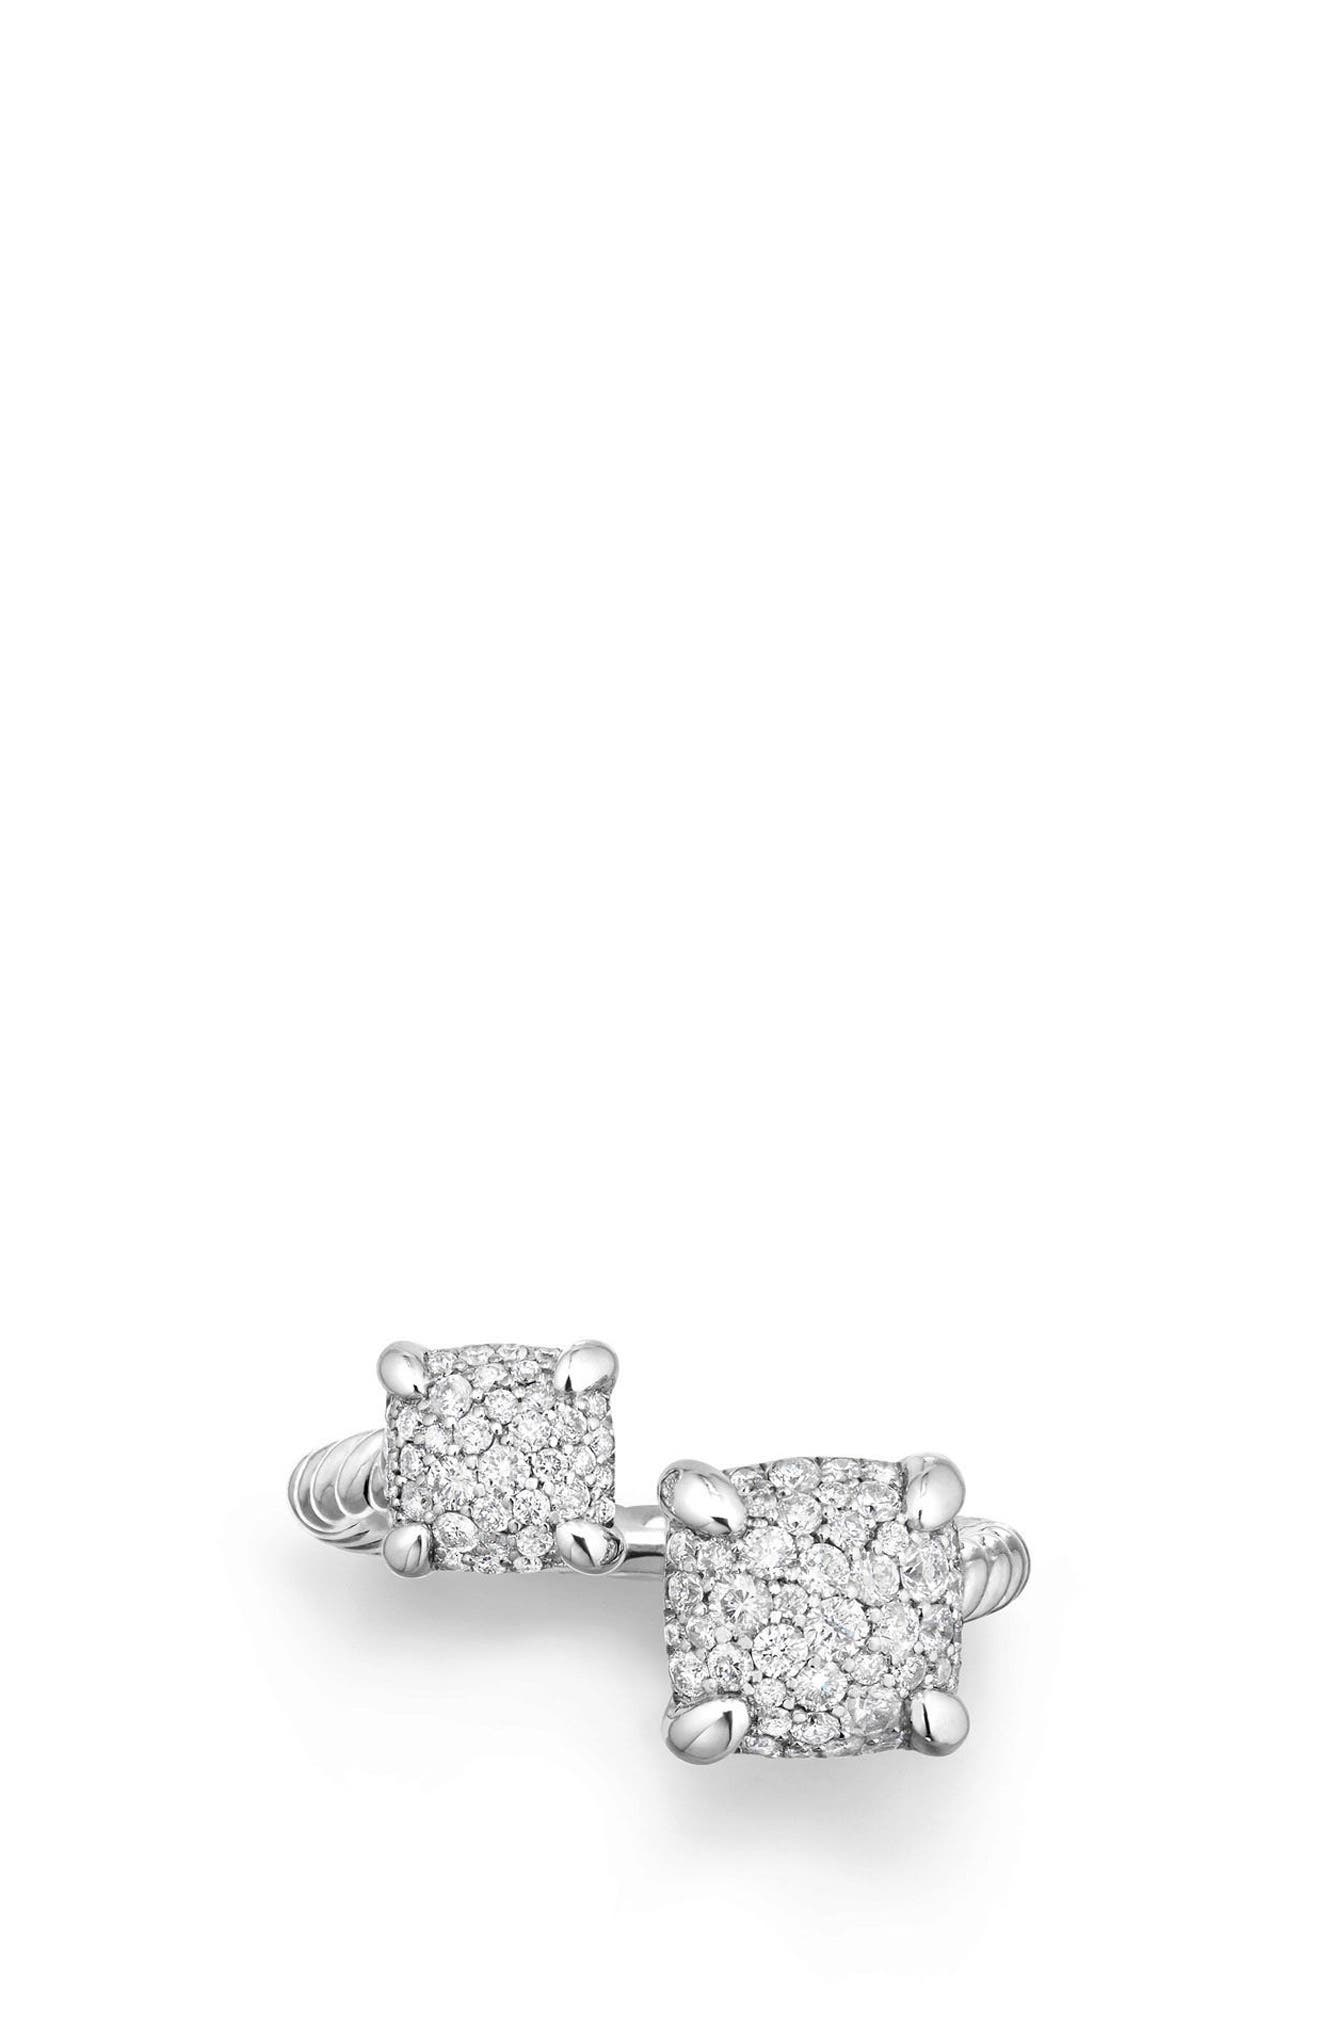 Châtelaine Bypass Ring with Diamonds,                             Alternate thumbnail 3, color,                             SILVER